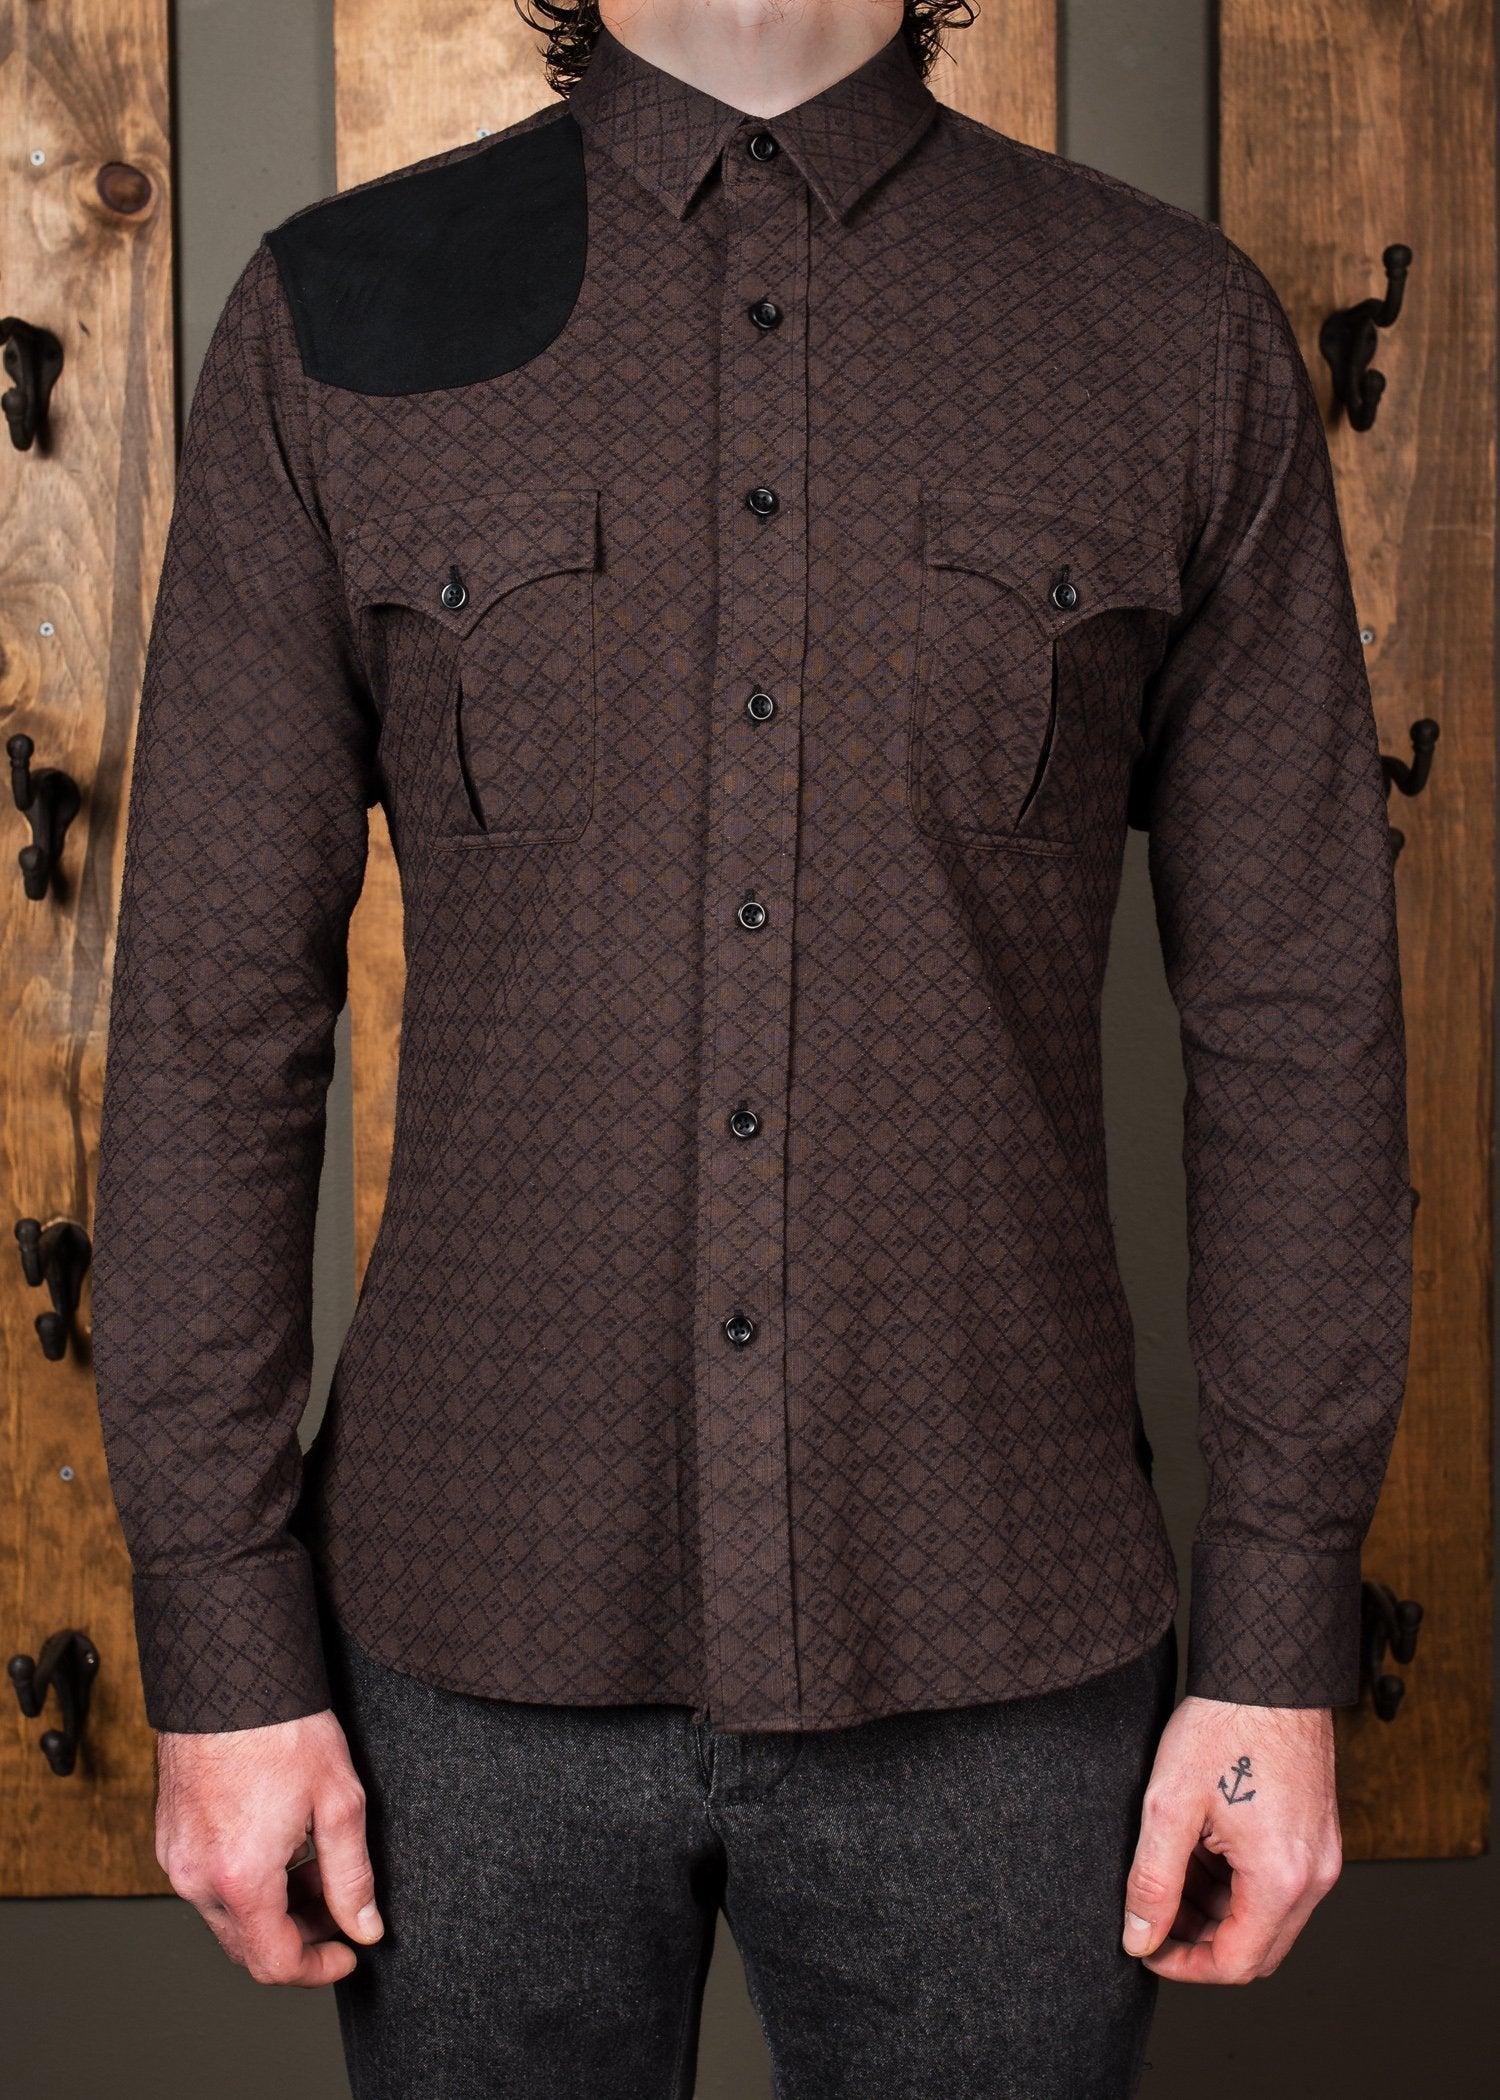 Marksman - Diamond Shirt